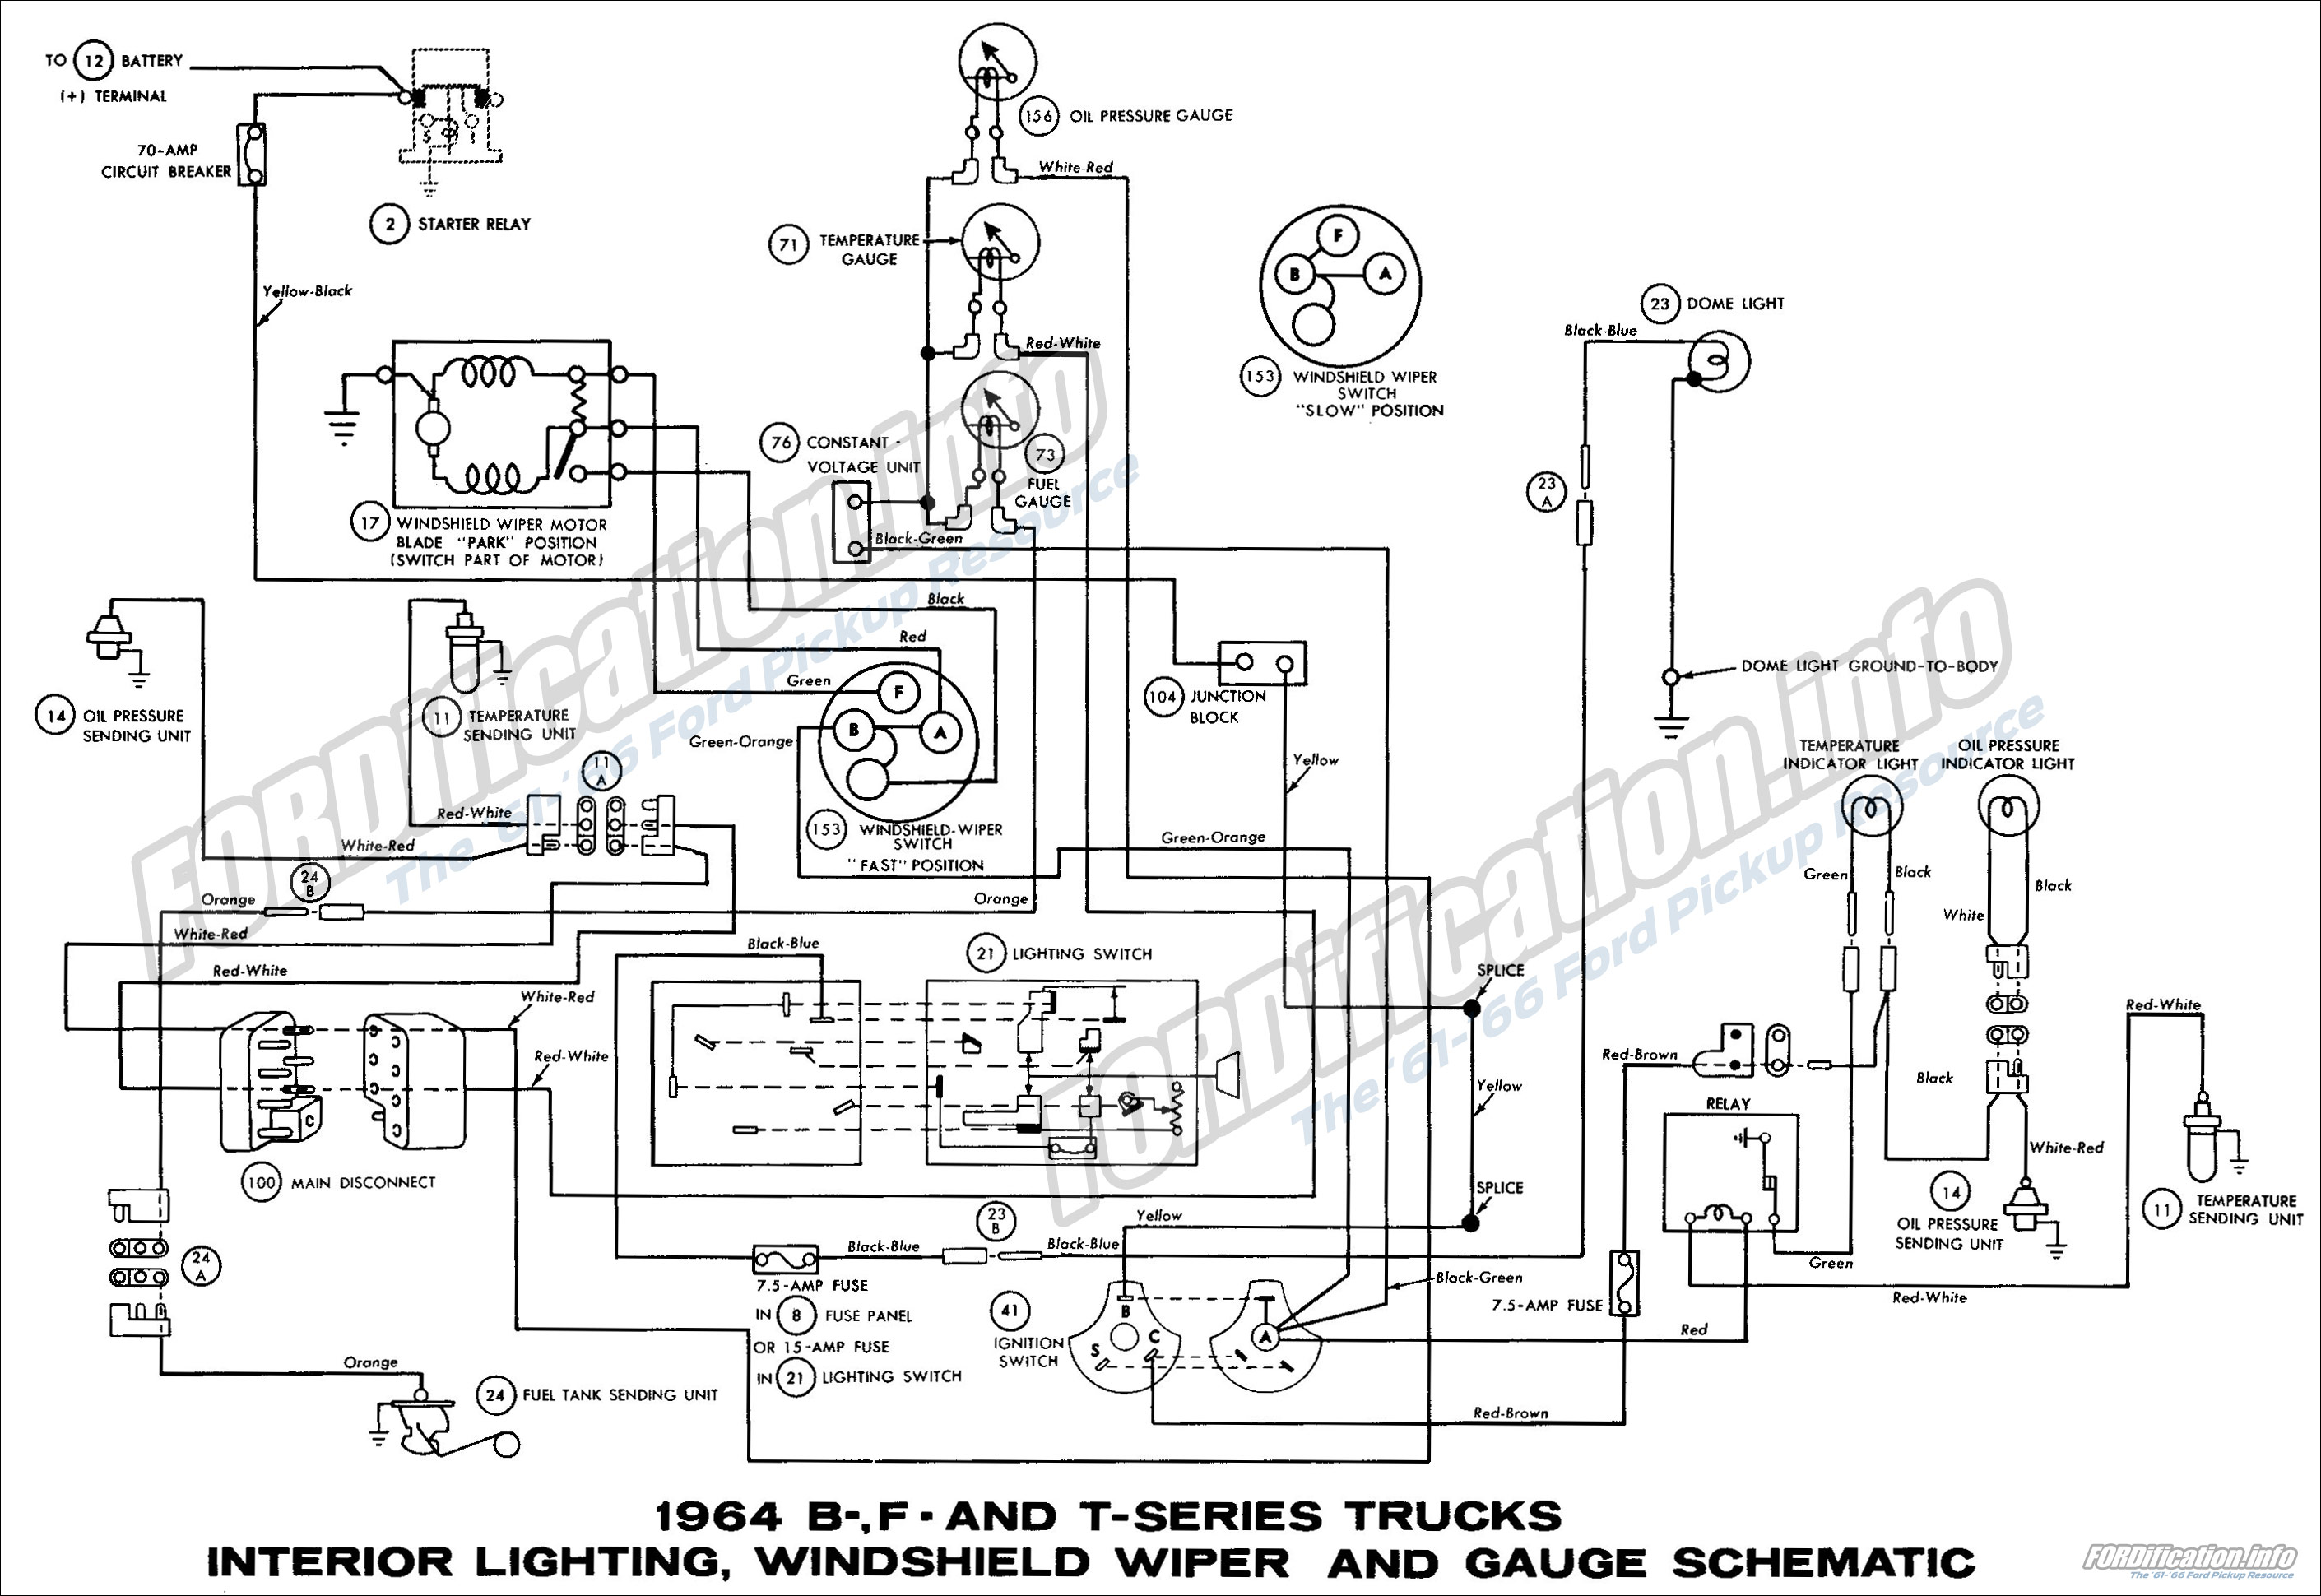 1964 Ford F100 Wiring Diagram For Best Site Wiring Harness